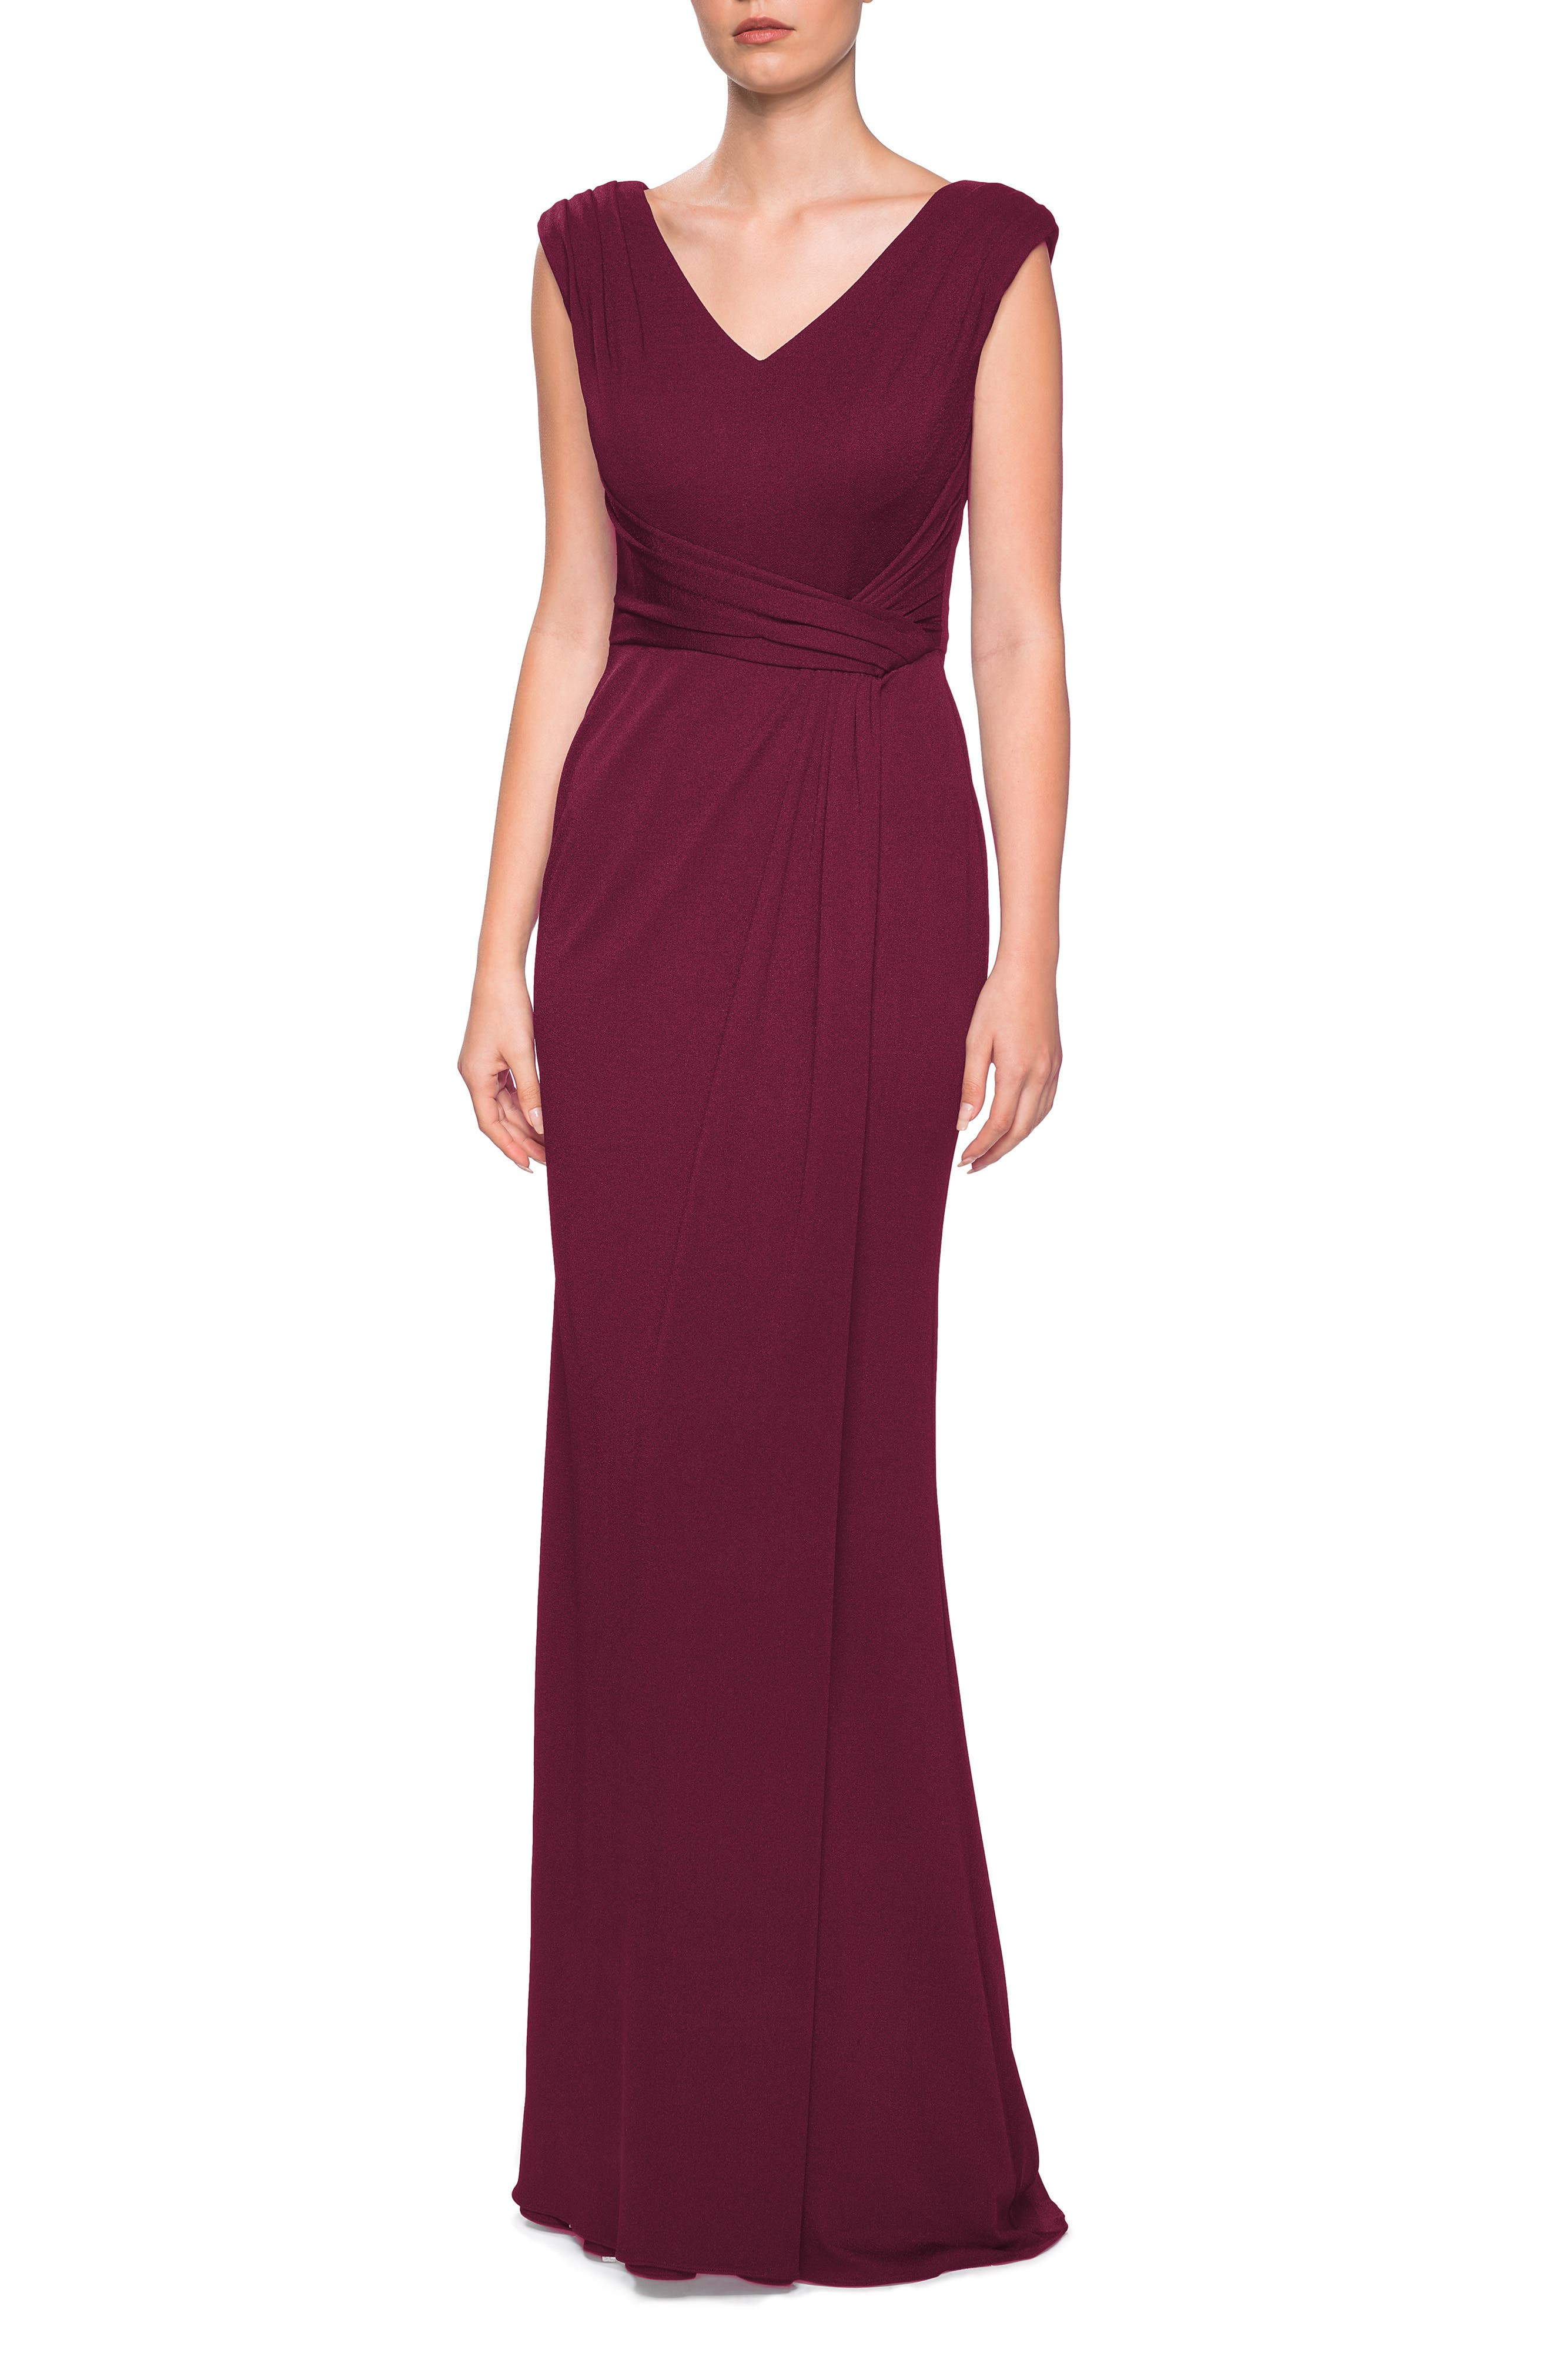 LA FEMME Fitted Jersey Gown in Burgundy